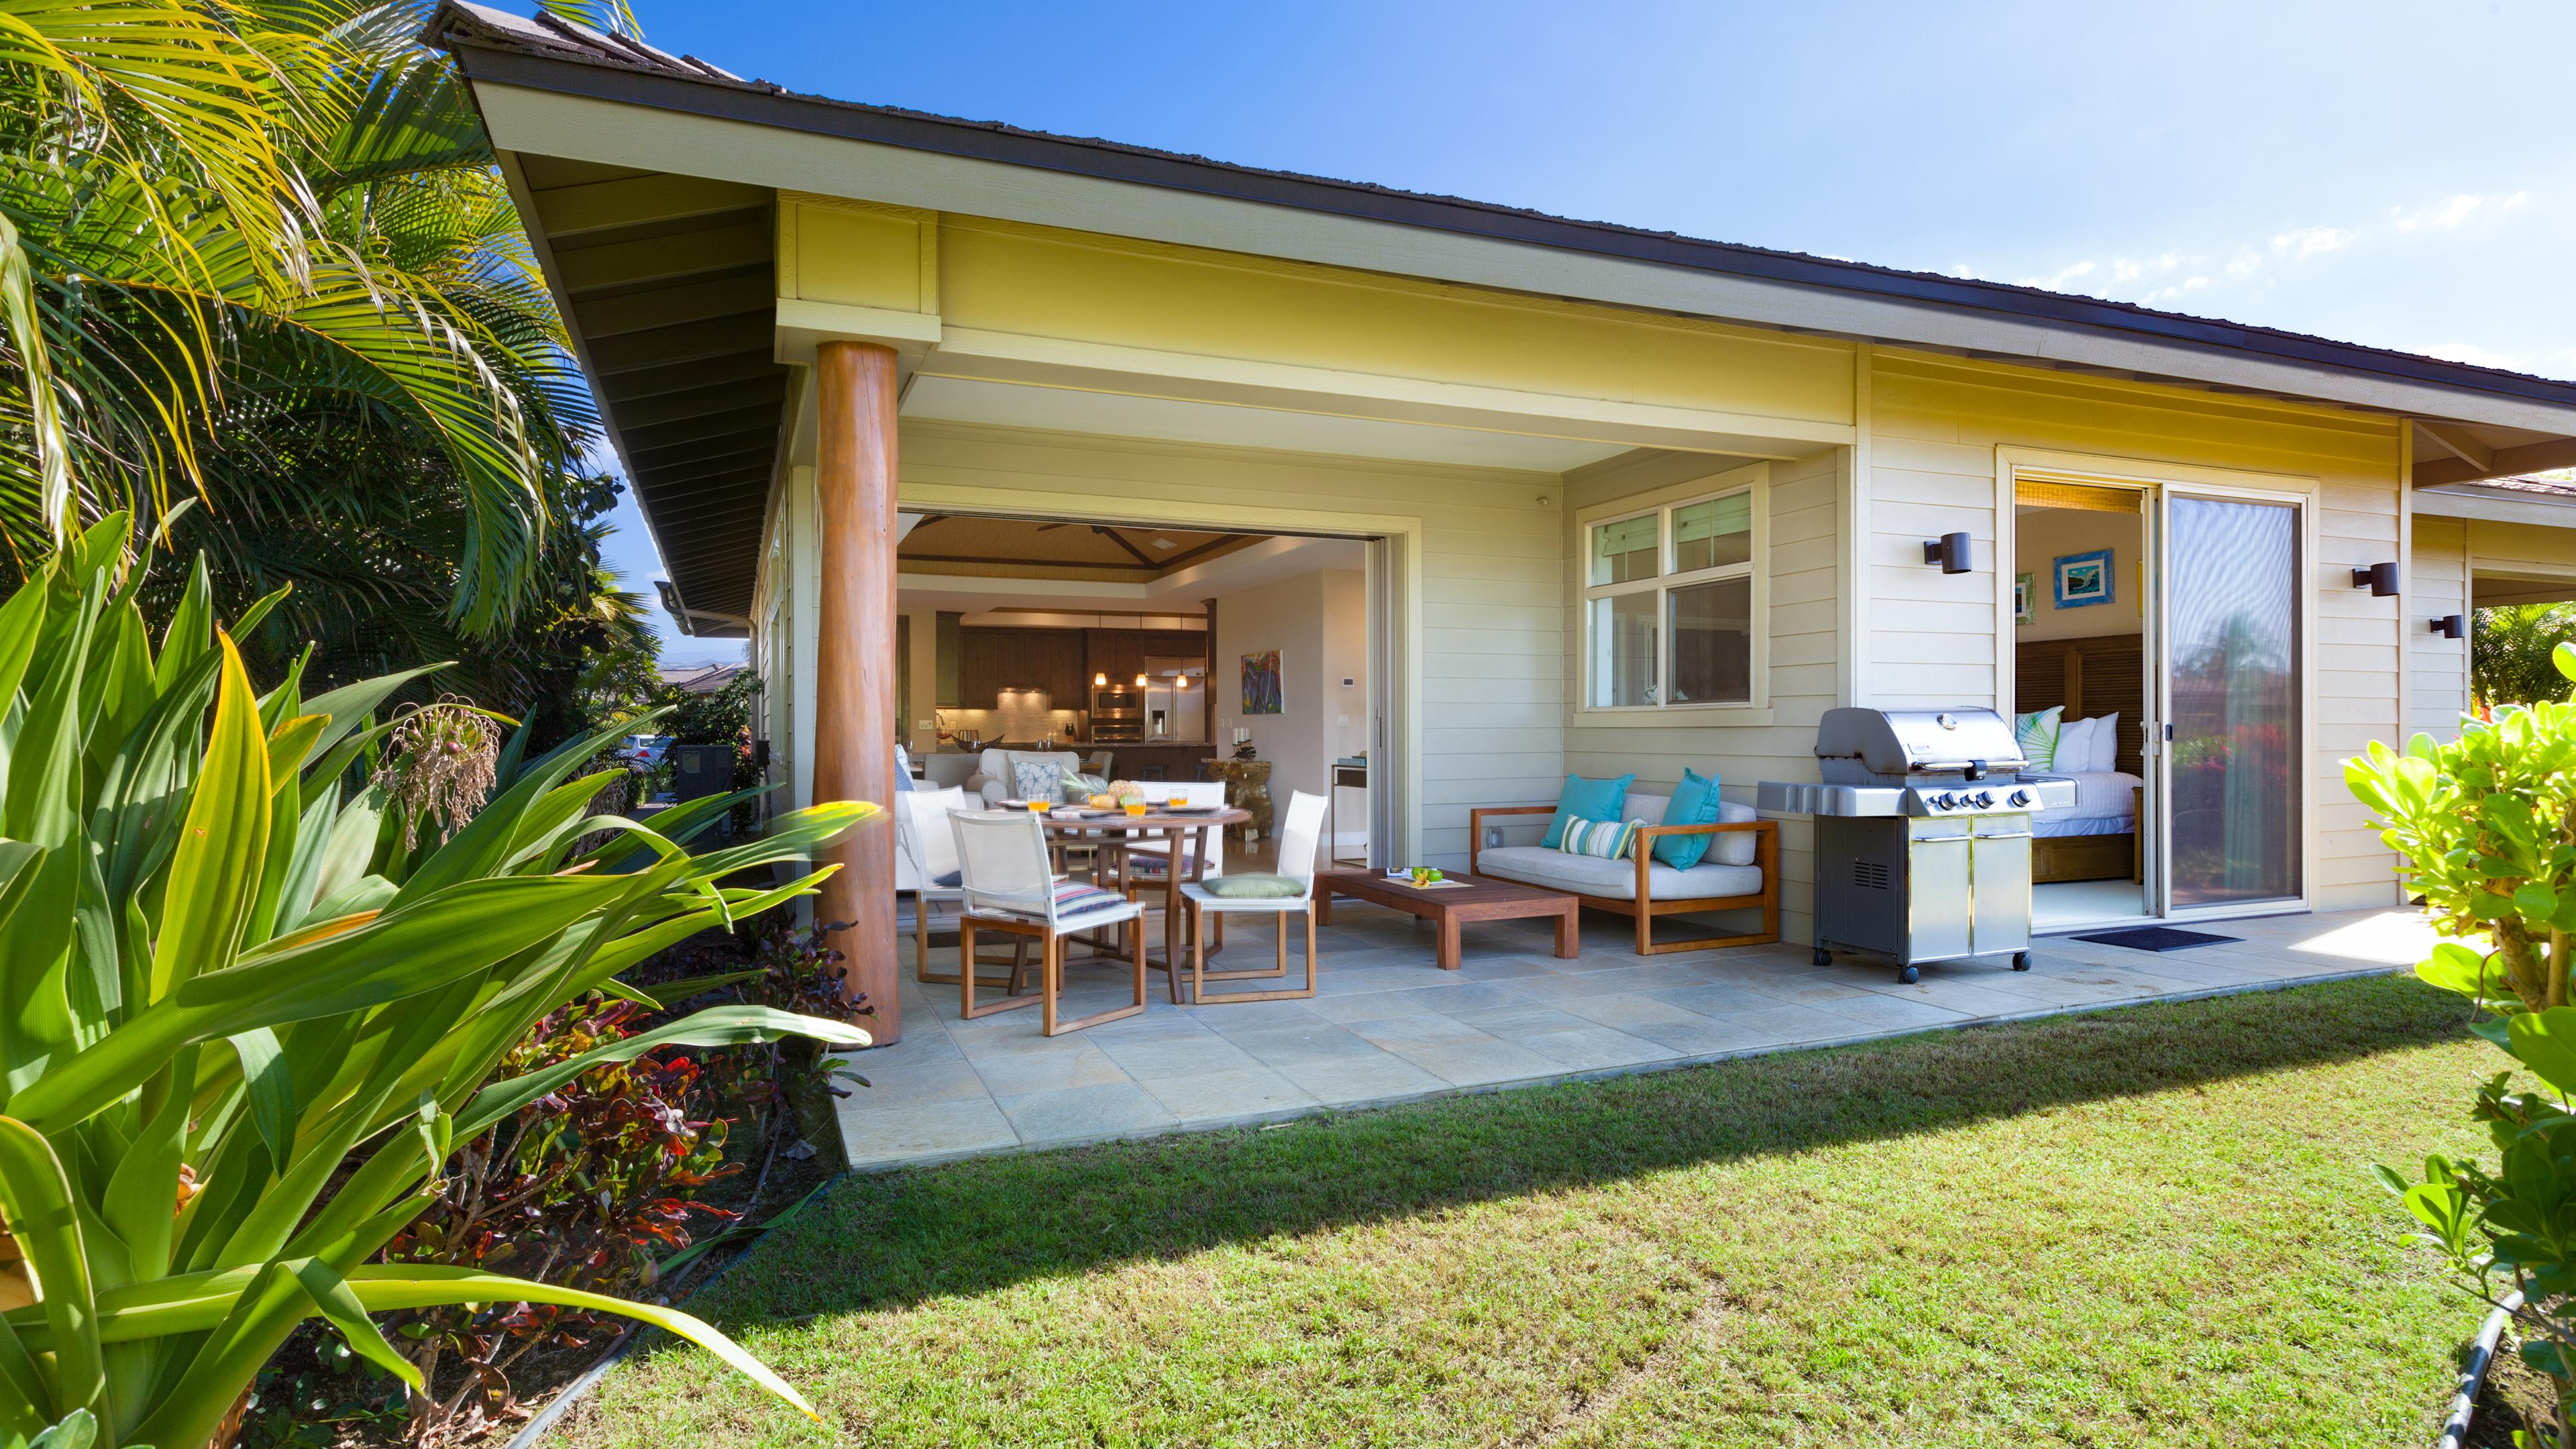 Welcome to Hawaiian Dream - Beautiful single level home in KaMilo community